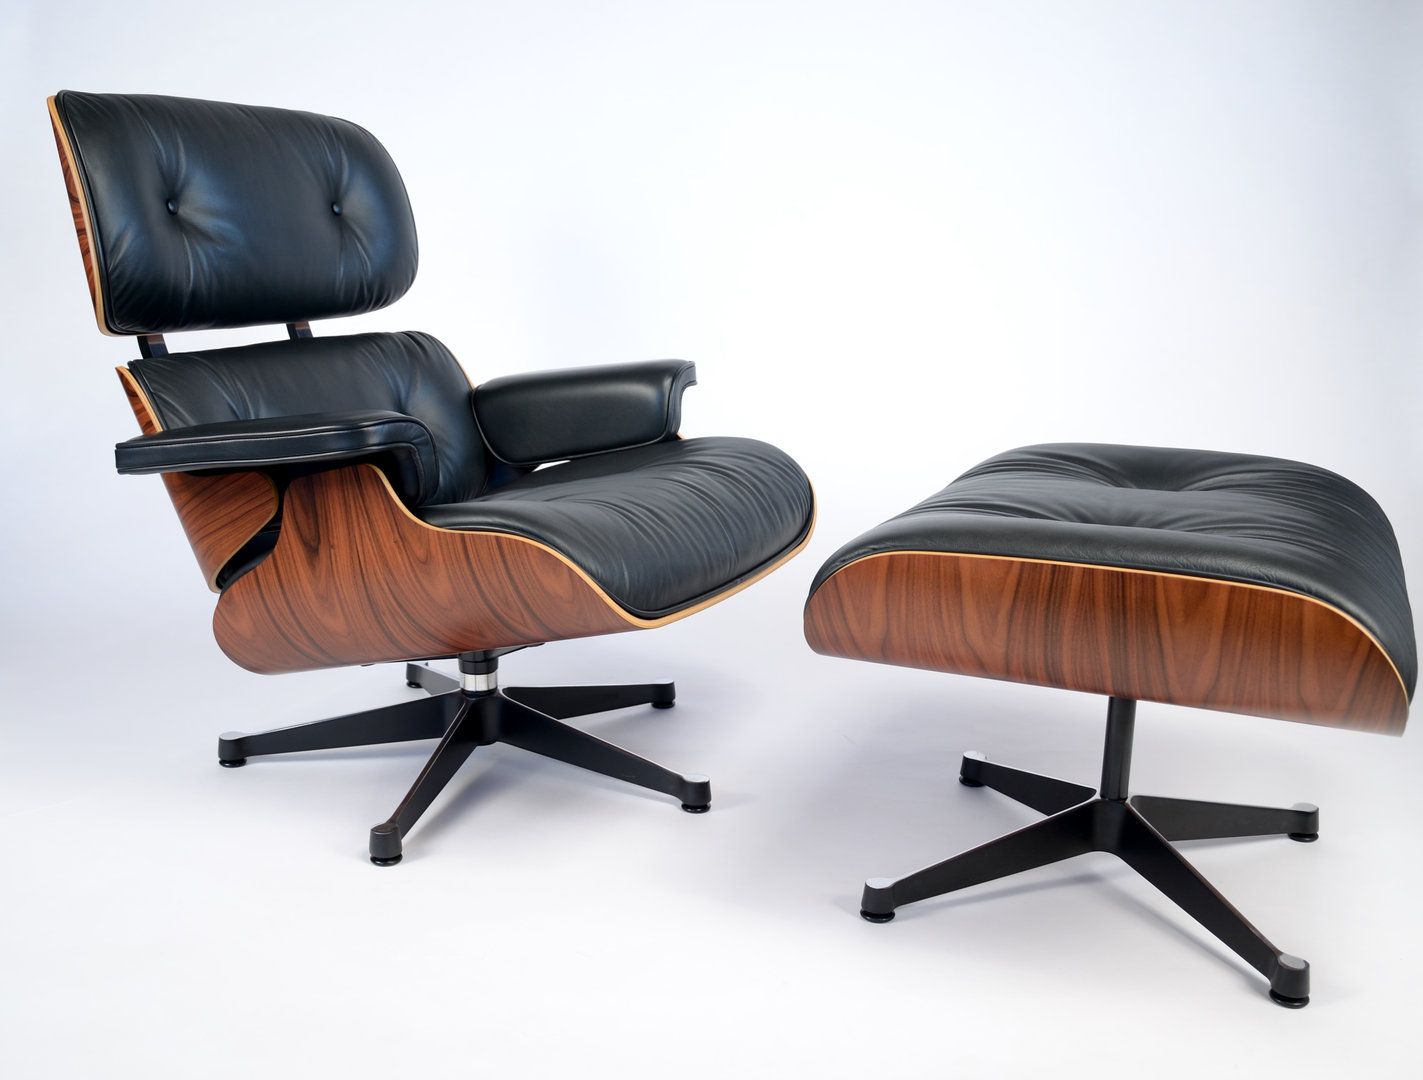 Reproduction Eames Chair Details About Black Leather Palisander Wood Eames Reproduction Lounge Chair Ottoman Set